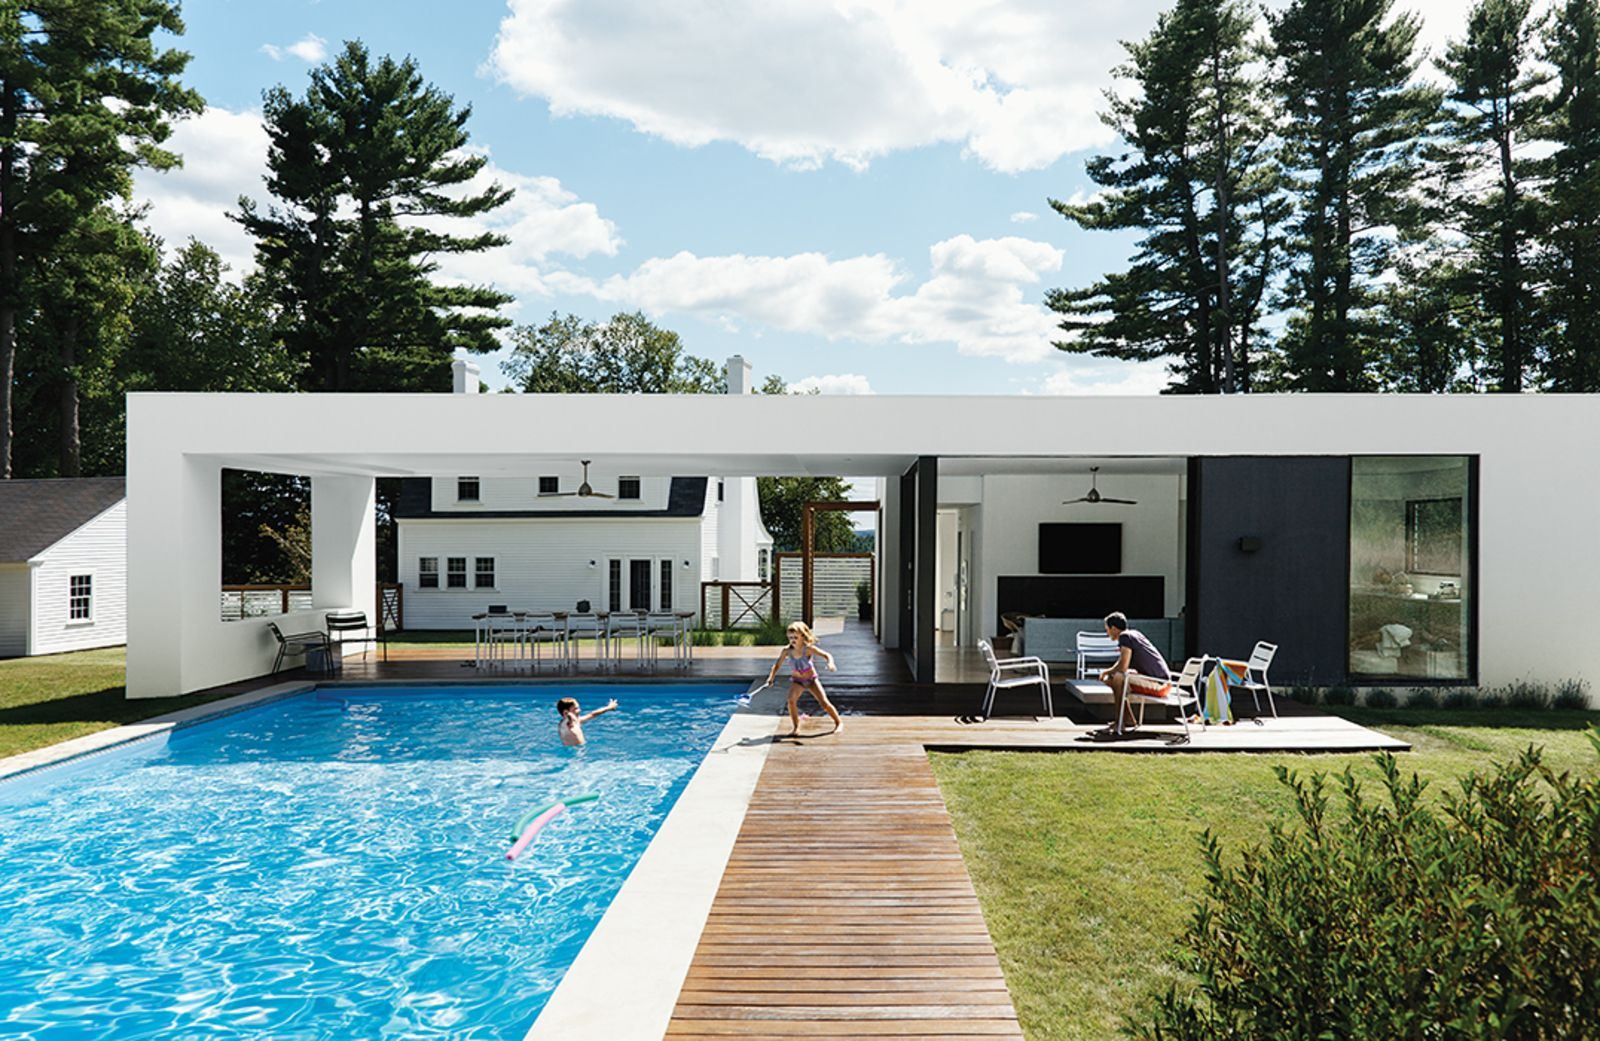 Modern Pool Design By Dwell From Piscinas Y Exteriores Maison De